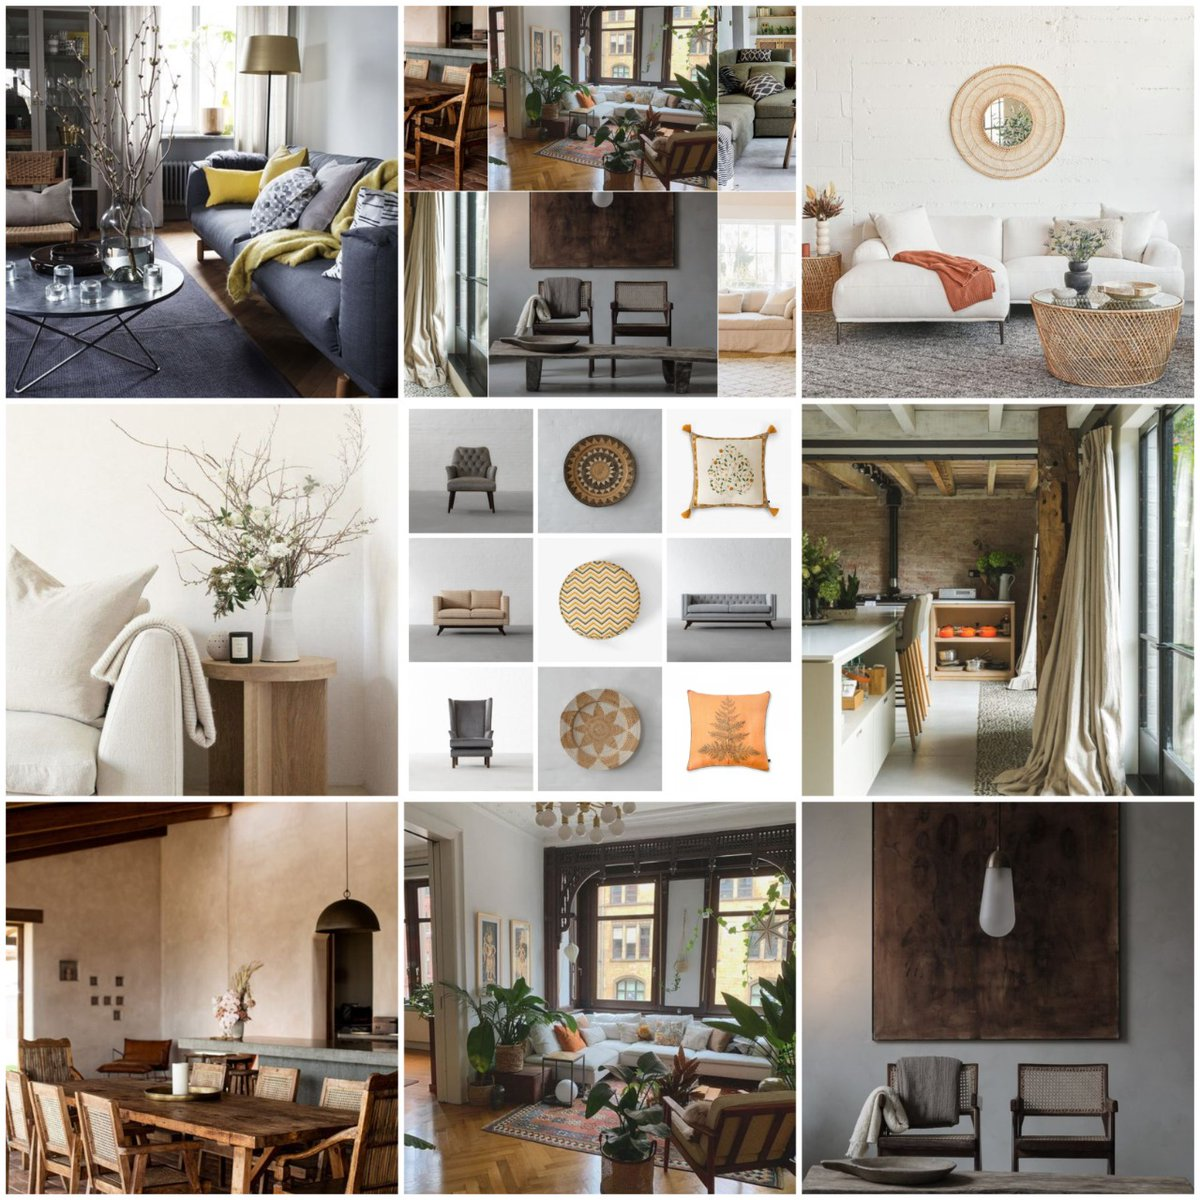 Our 2021 trend edit will offer you a curated look that will tug your home into the New Year with a dramatic flair for all things fine...  READ HERE   #blog #blogger #follow #photography #style #bloggerstyle #lifestyle #home #blogging #gulmoharlane